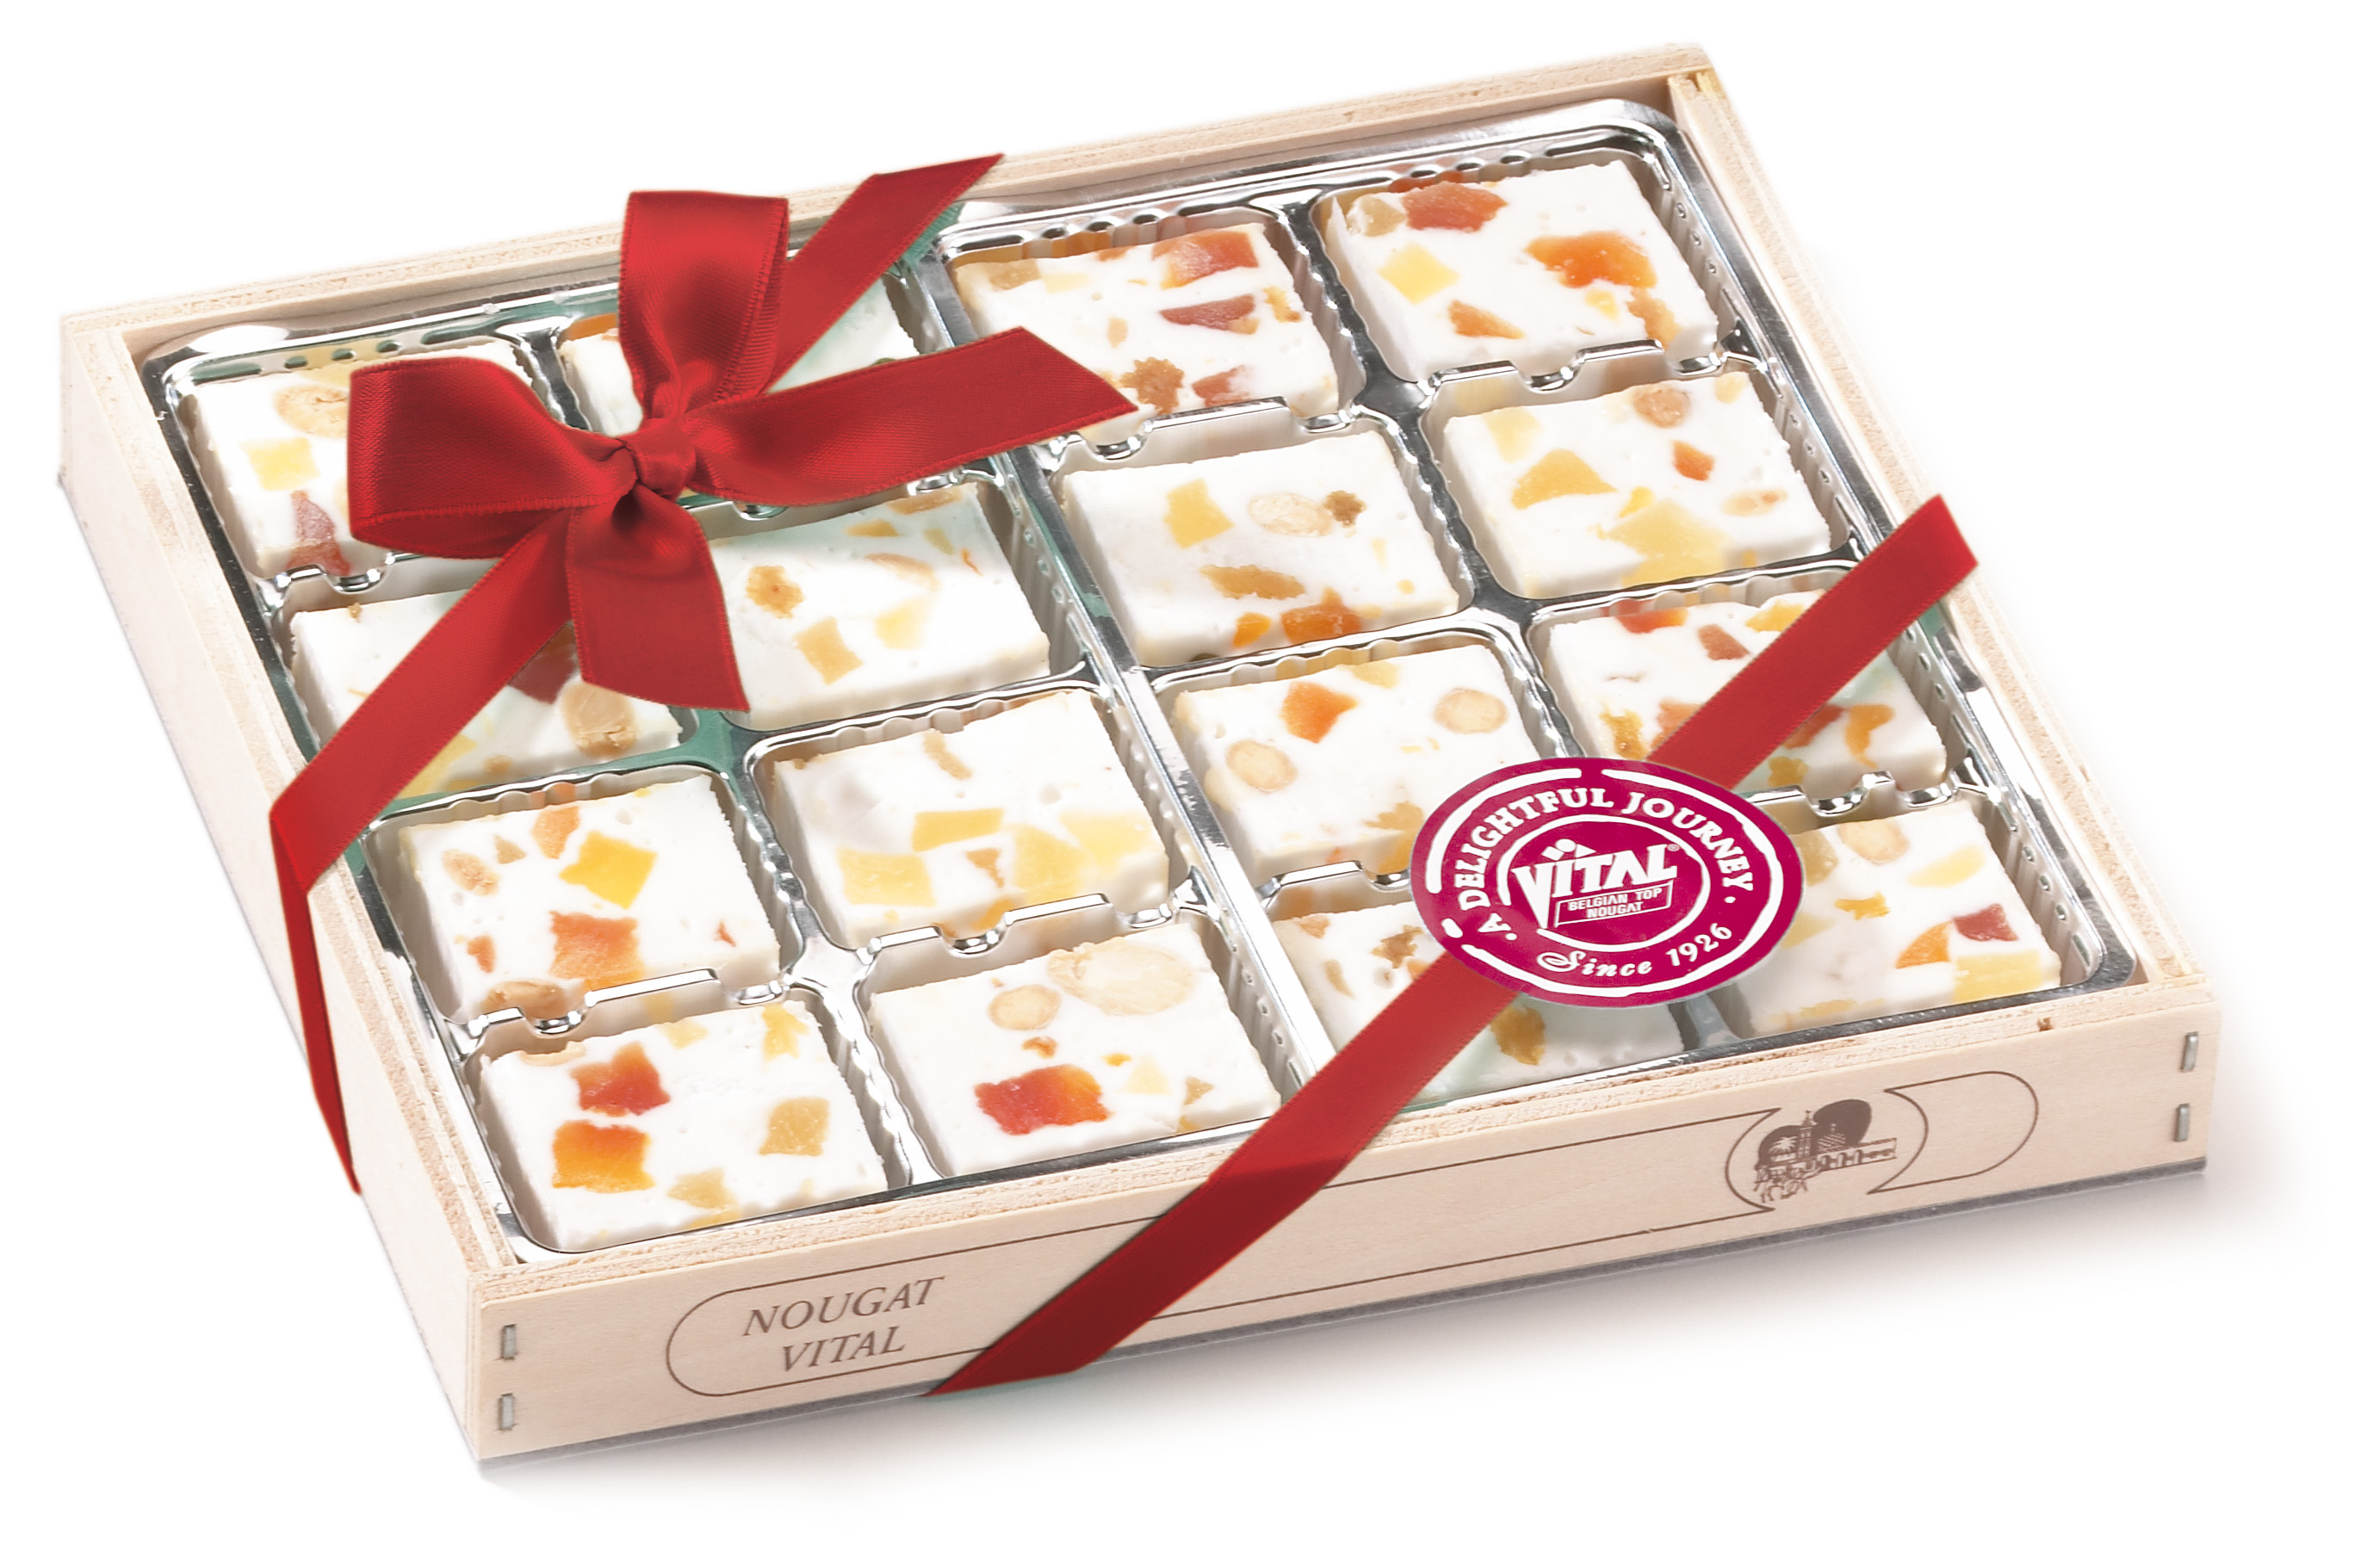 Fruit nougat and vanilla nougat in wooden giftboxes. Almond